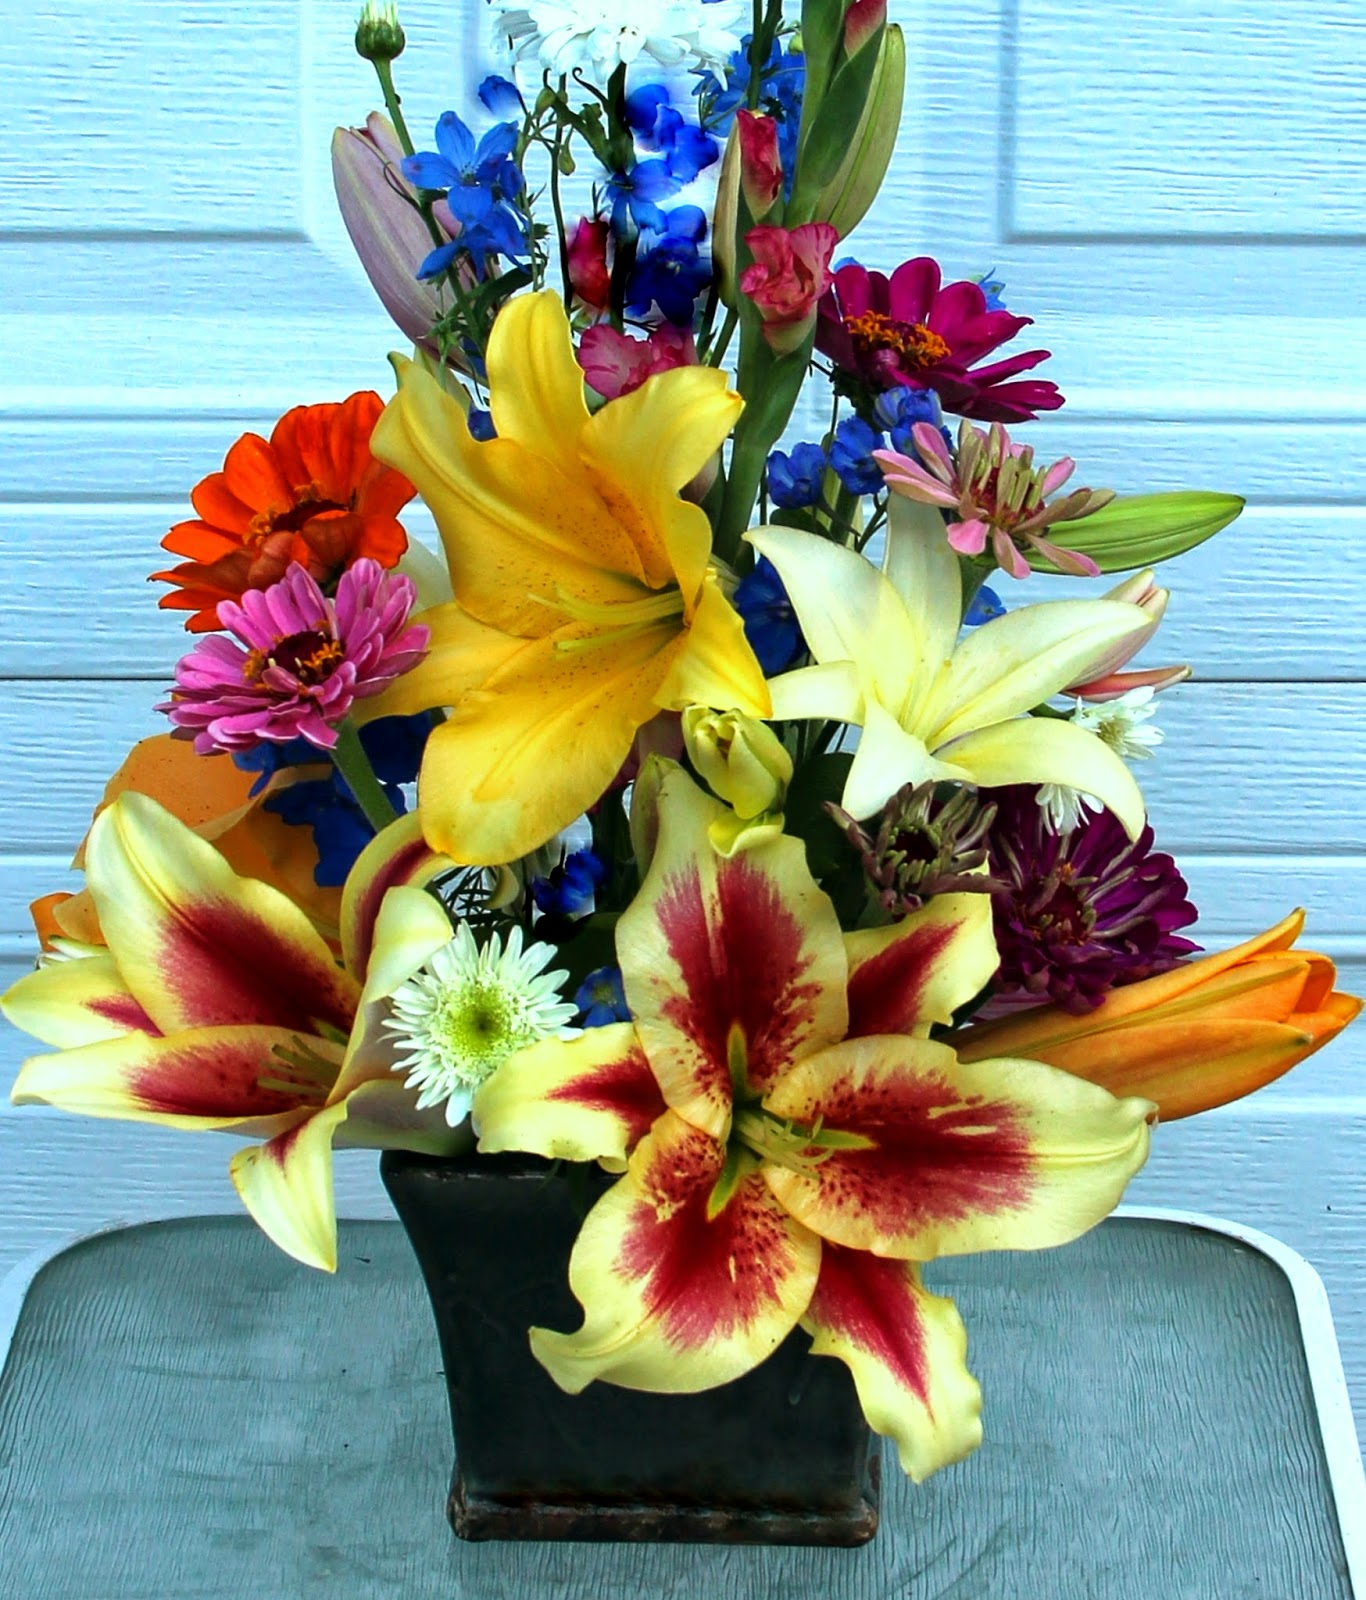 Flowers in vase change water - Plunge Immediately In Water With A Floral Preservative Keep Out Of Bright Direct Light For A Longer Vase Life Change Water If Possible Every Other Day